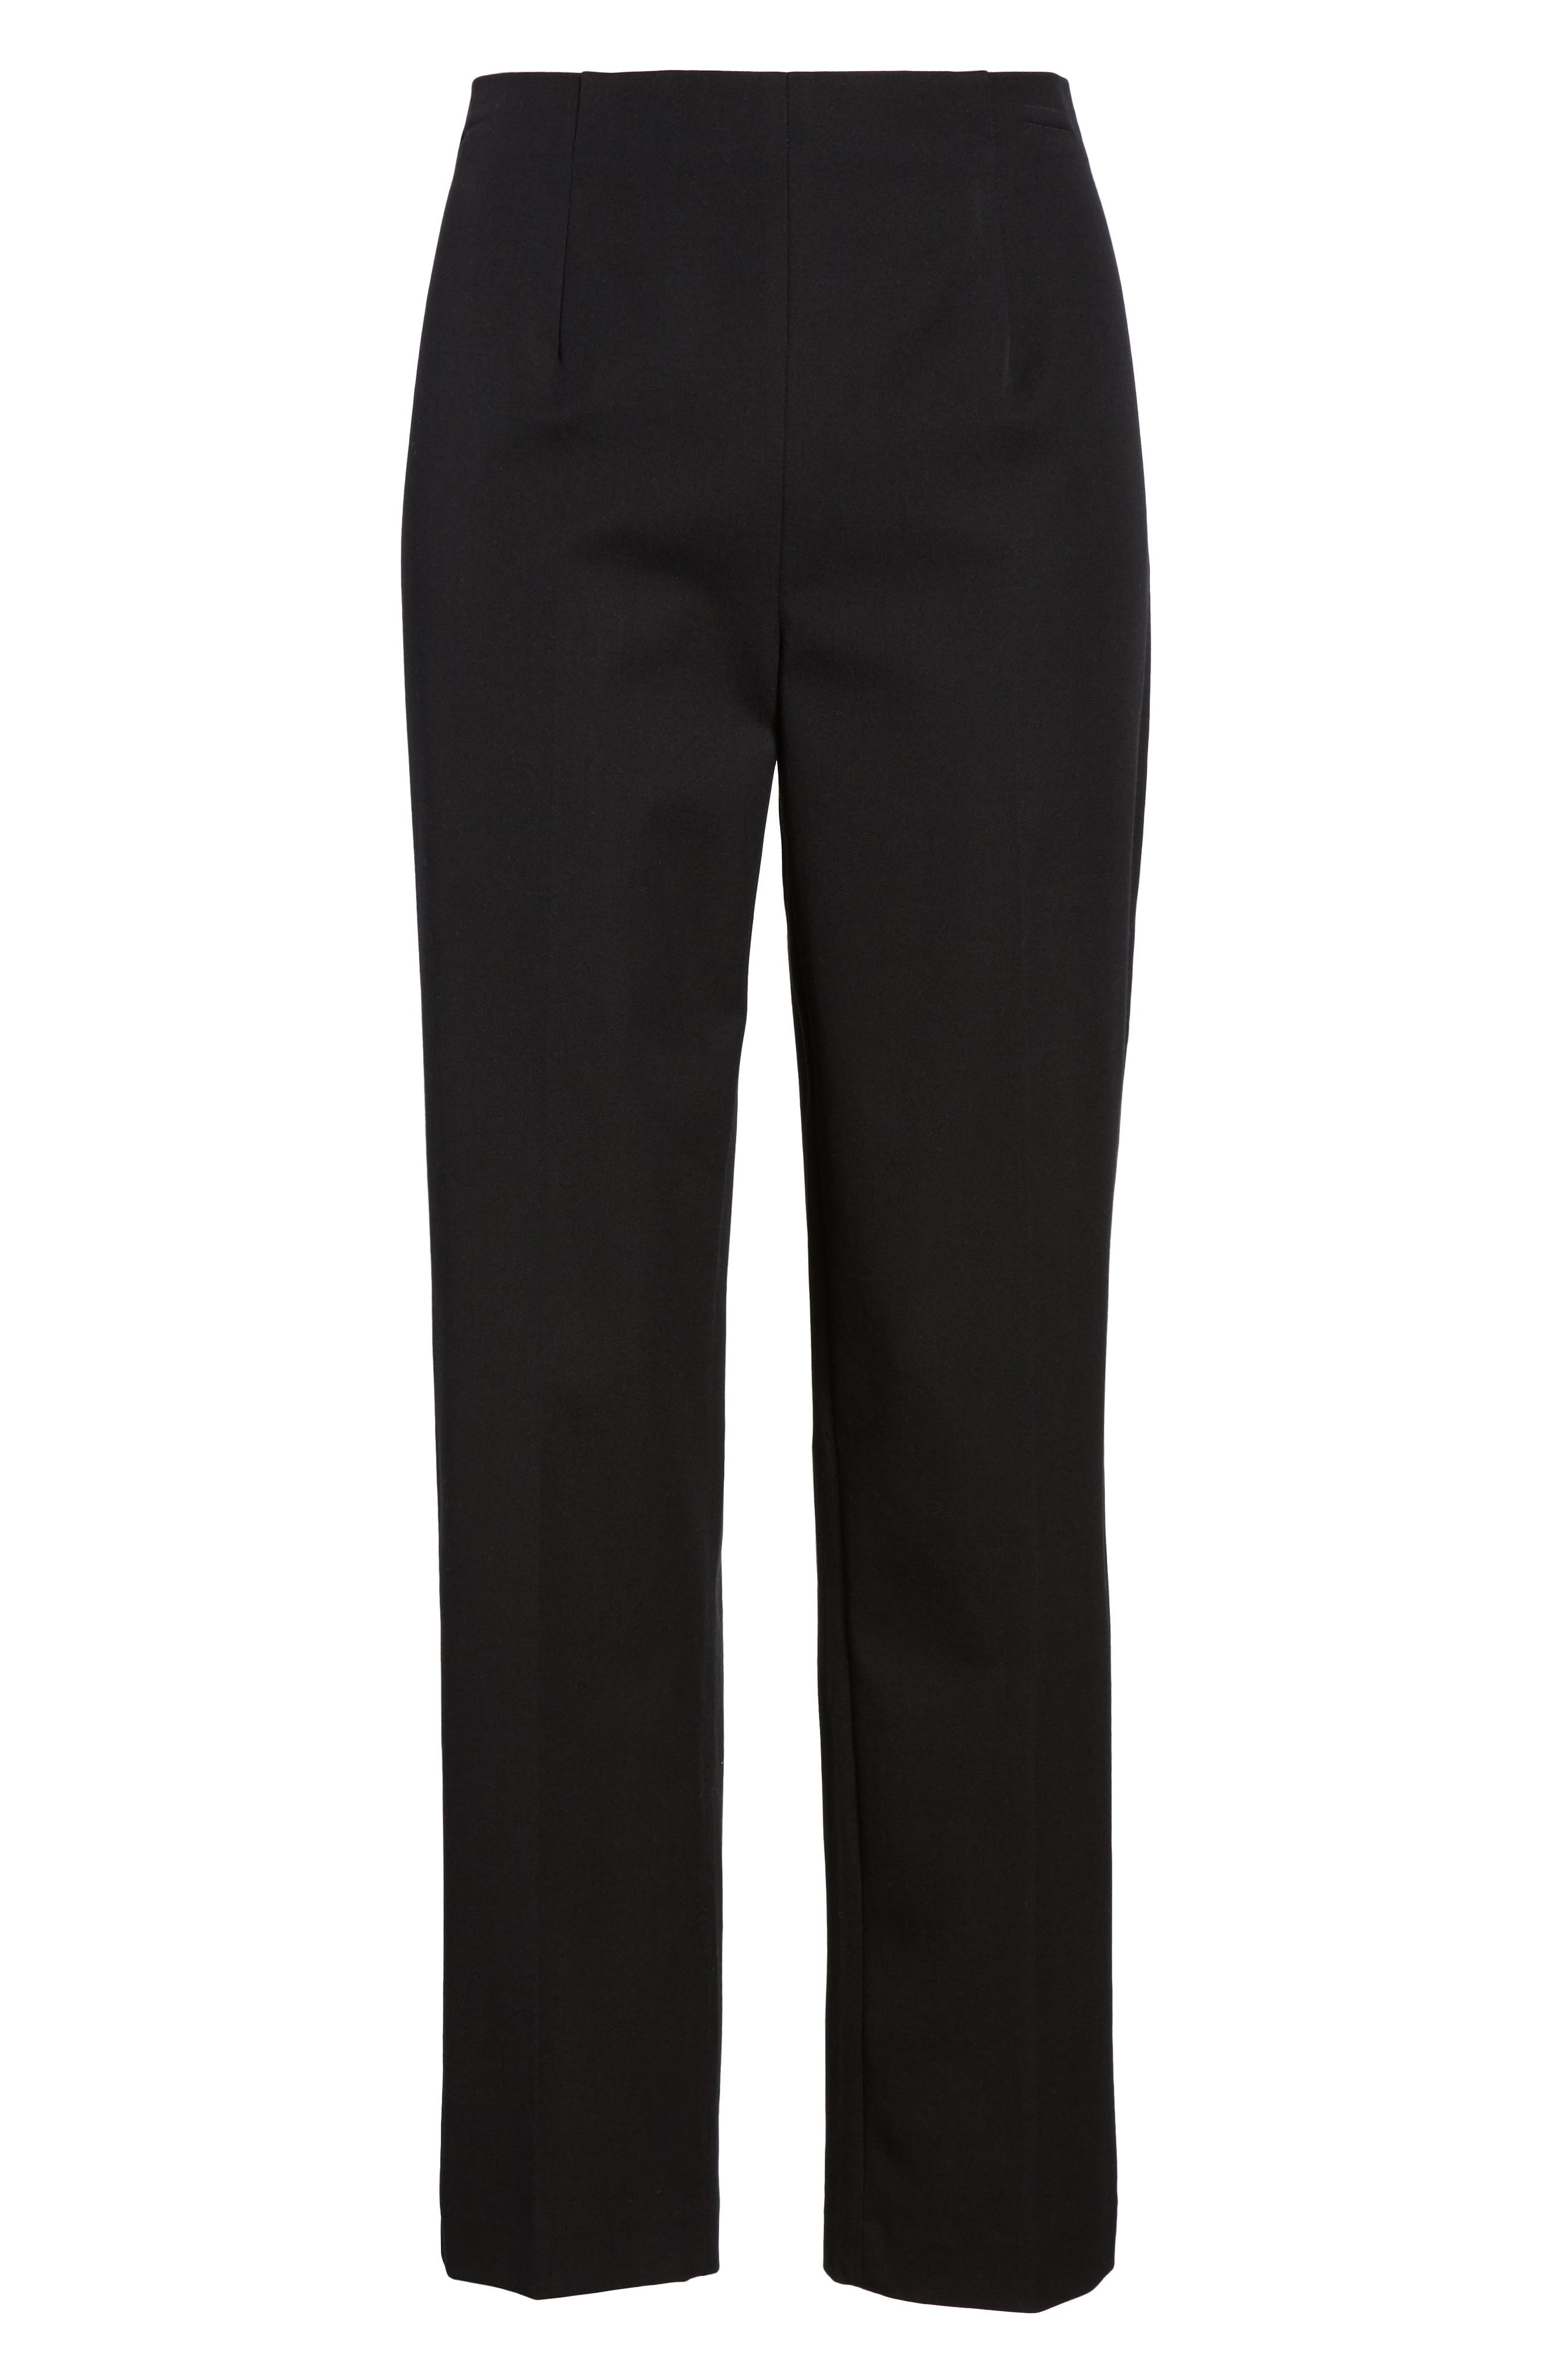 MING WANG, Woven Slim Ankle Pants, Alternate thumbnail 6, color, BLACK